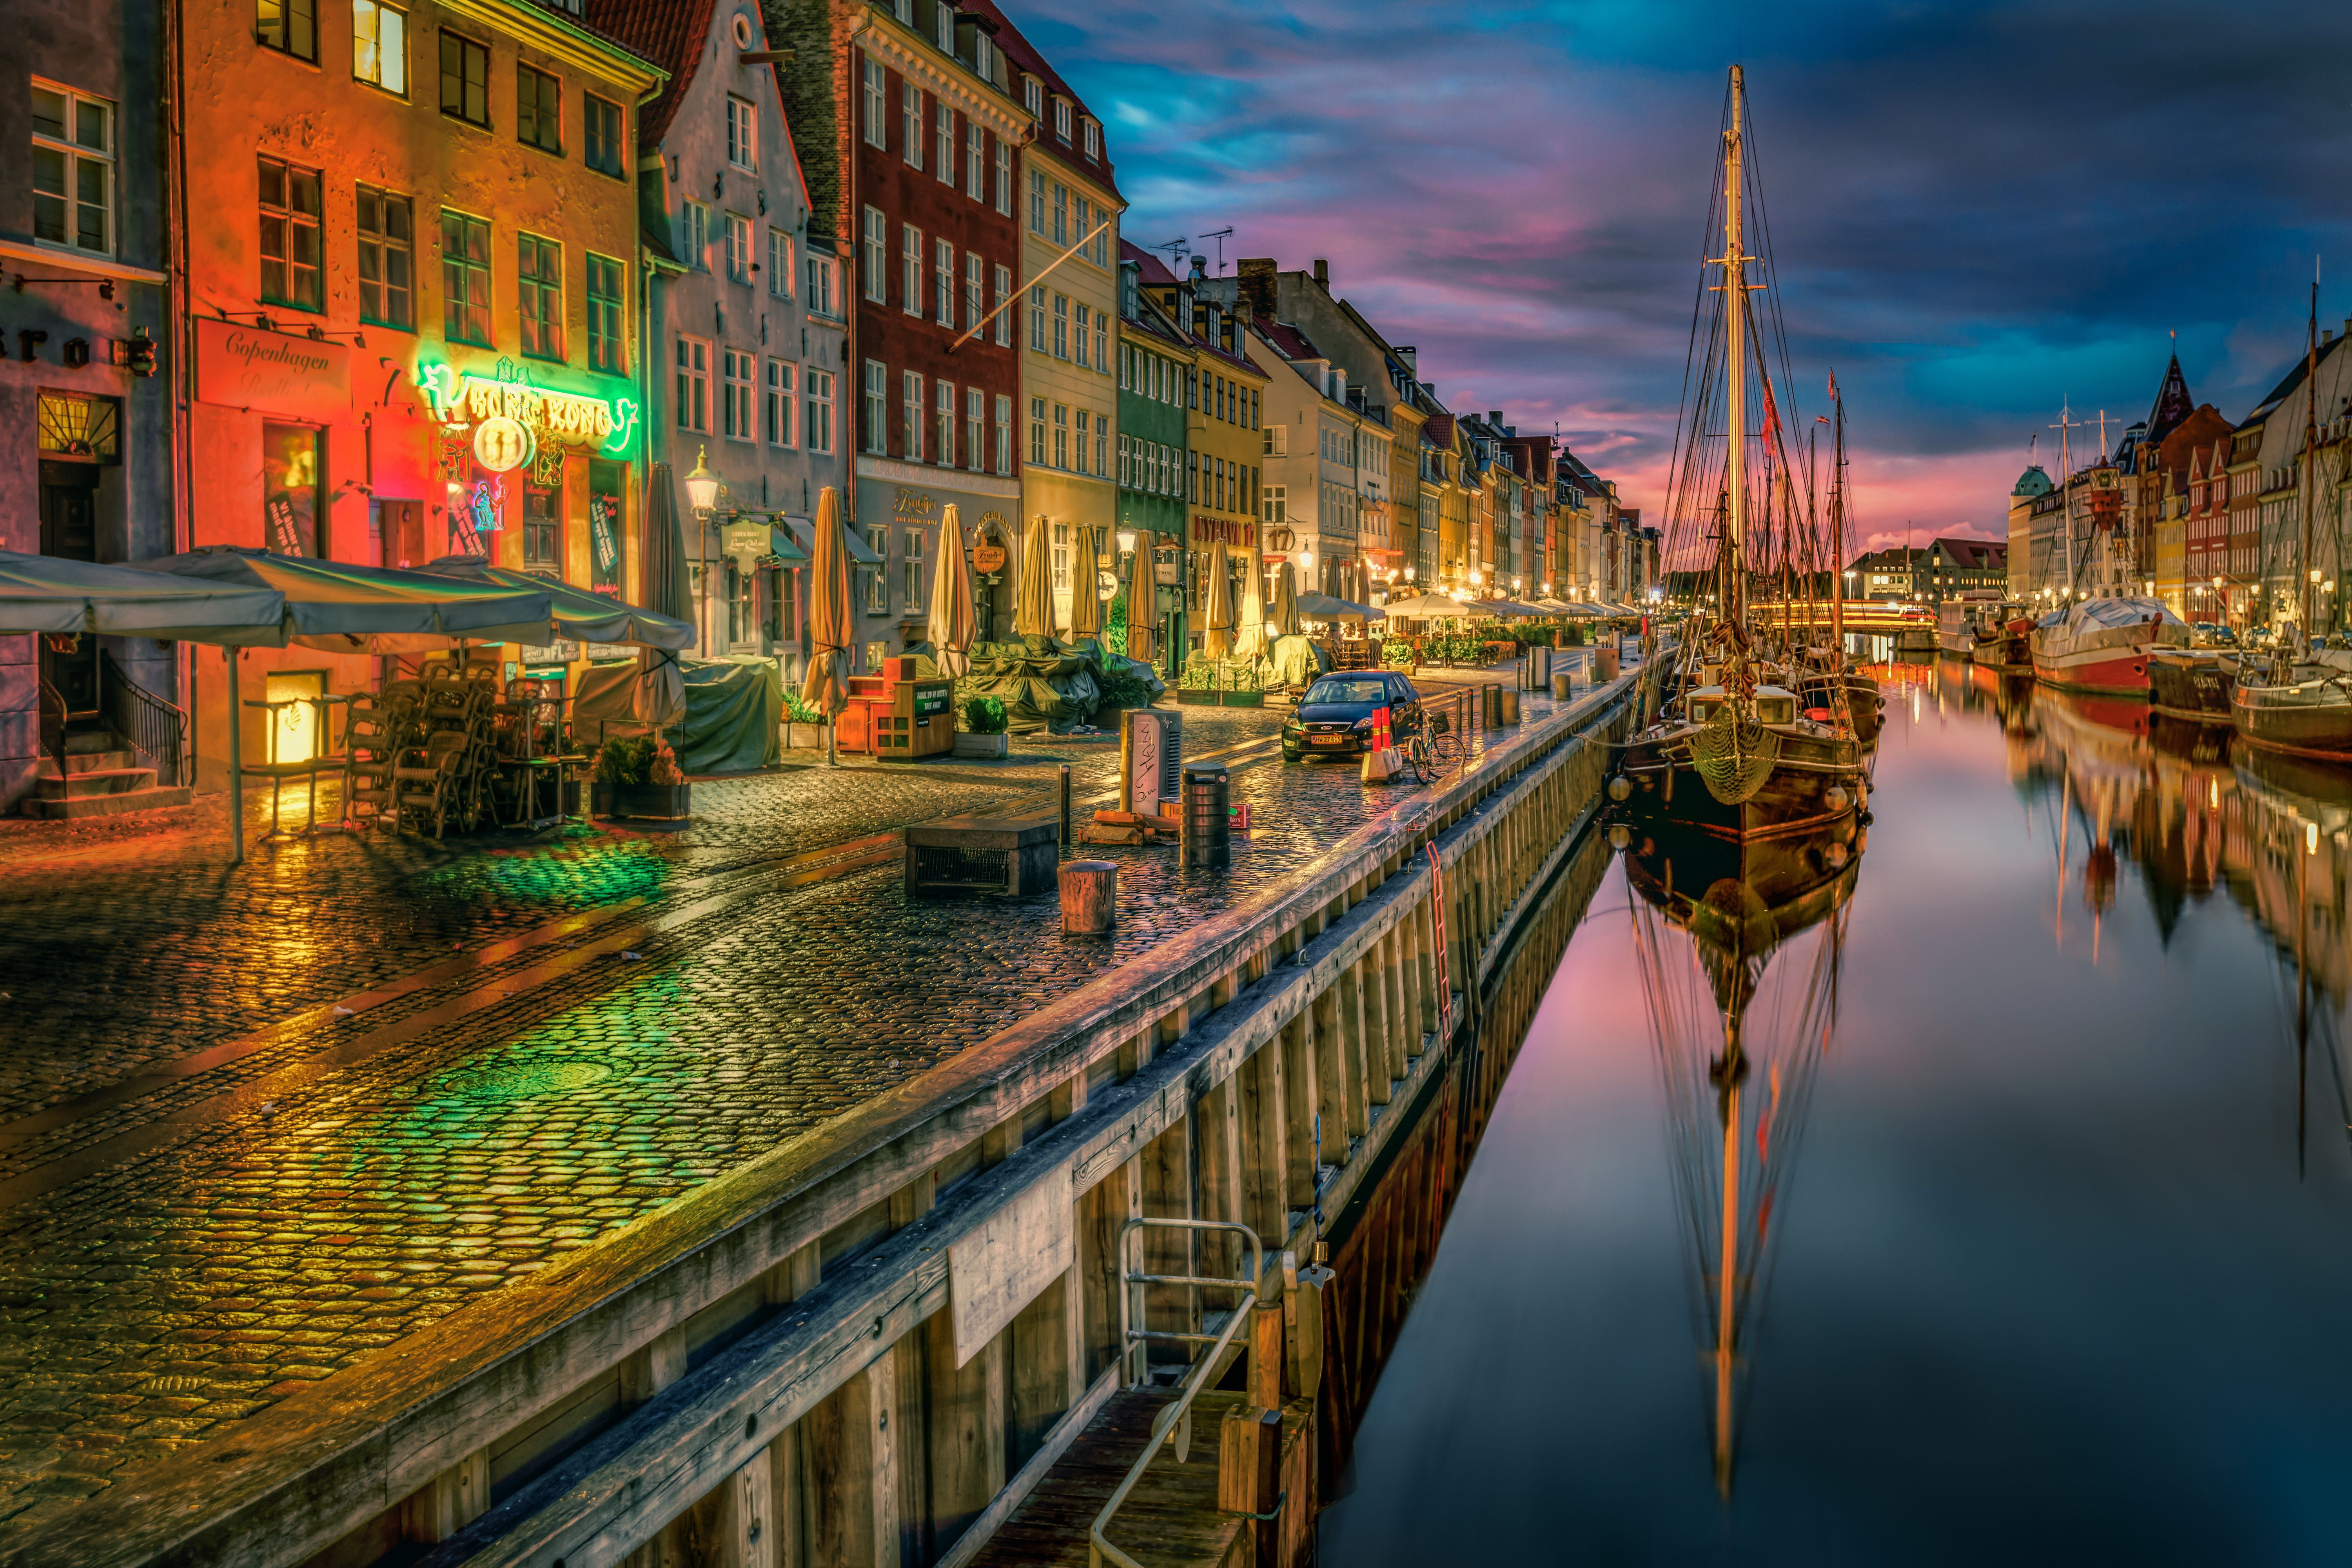 6000x4000 Copenhagen, Denmark at Night 5k Retina Ultra HD Wallpaper ...